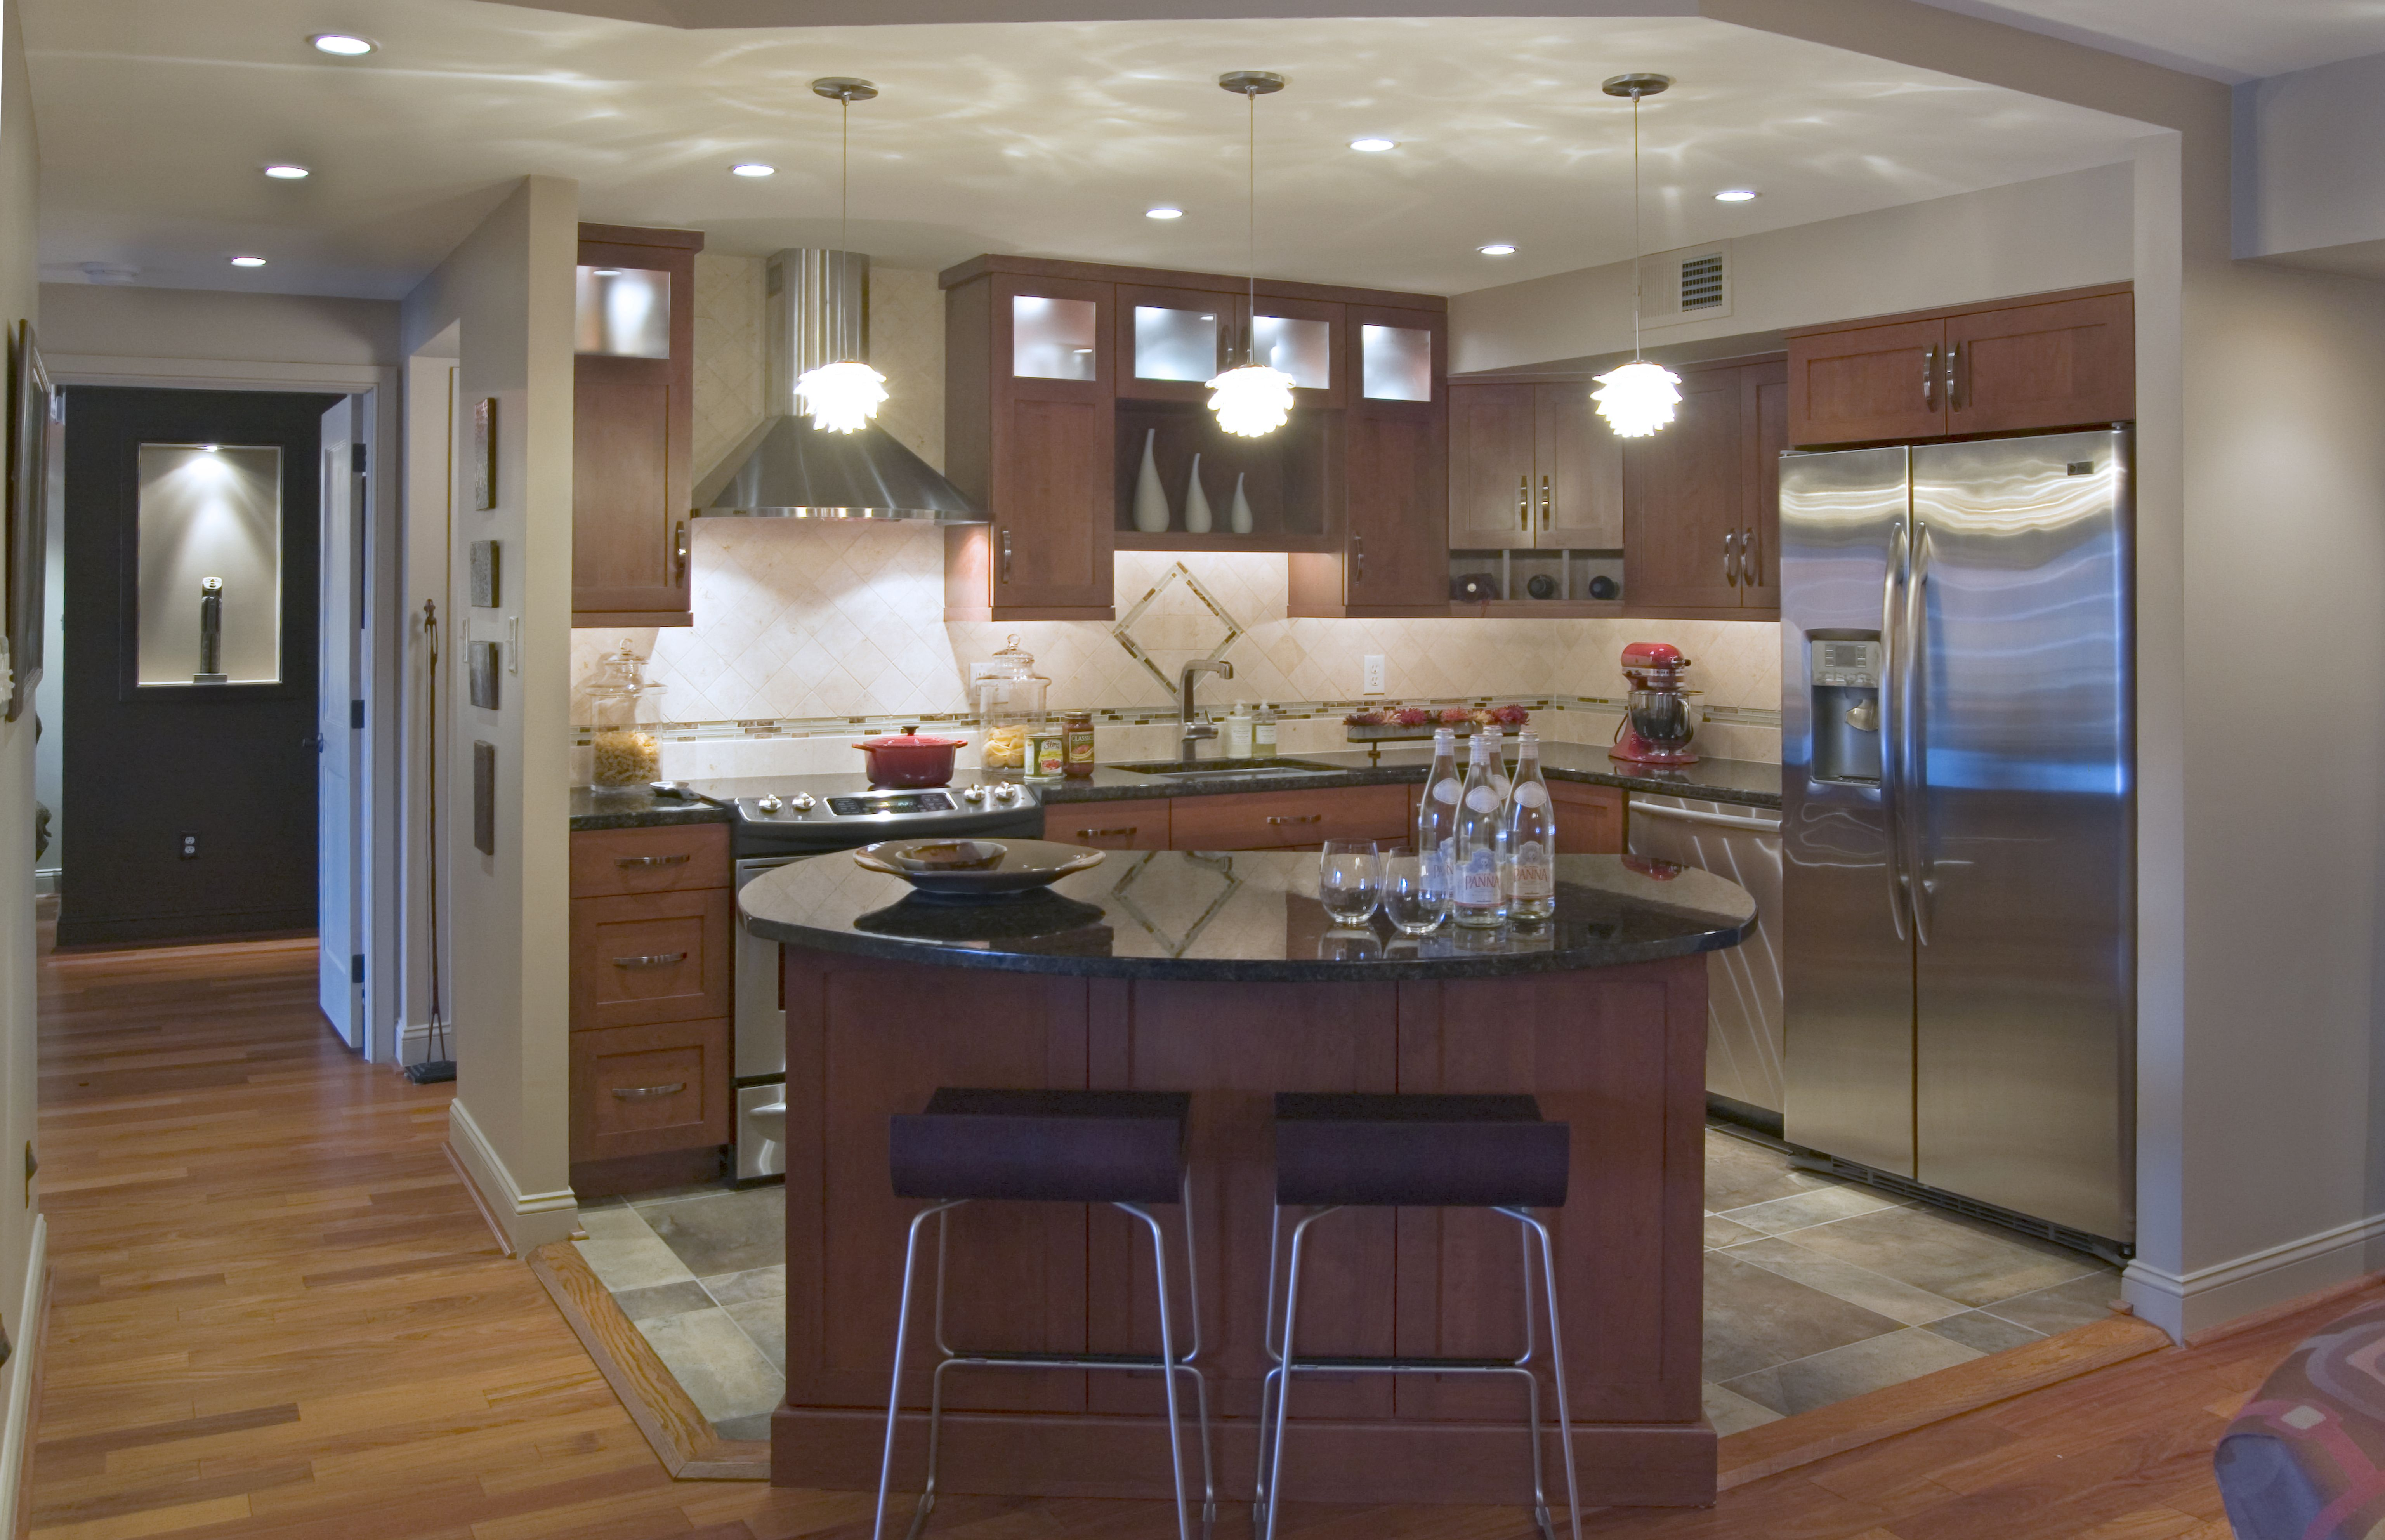 Pictures Of Renovated Kitchens House Construction Planset of dining room